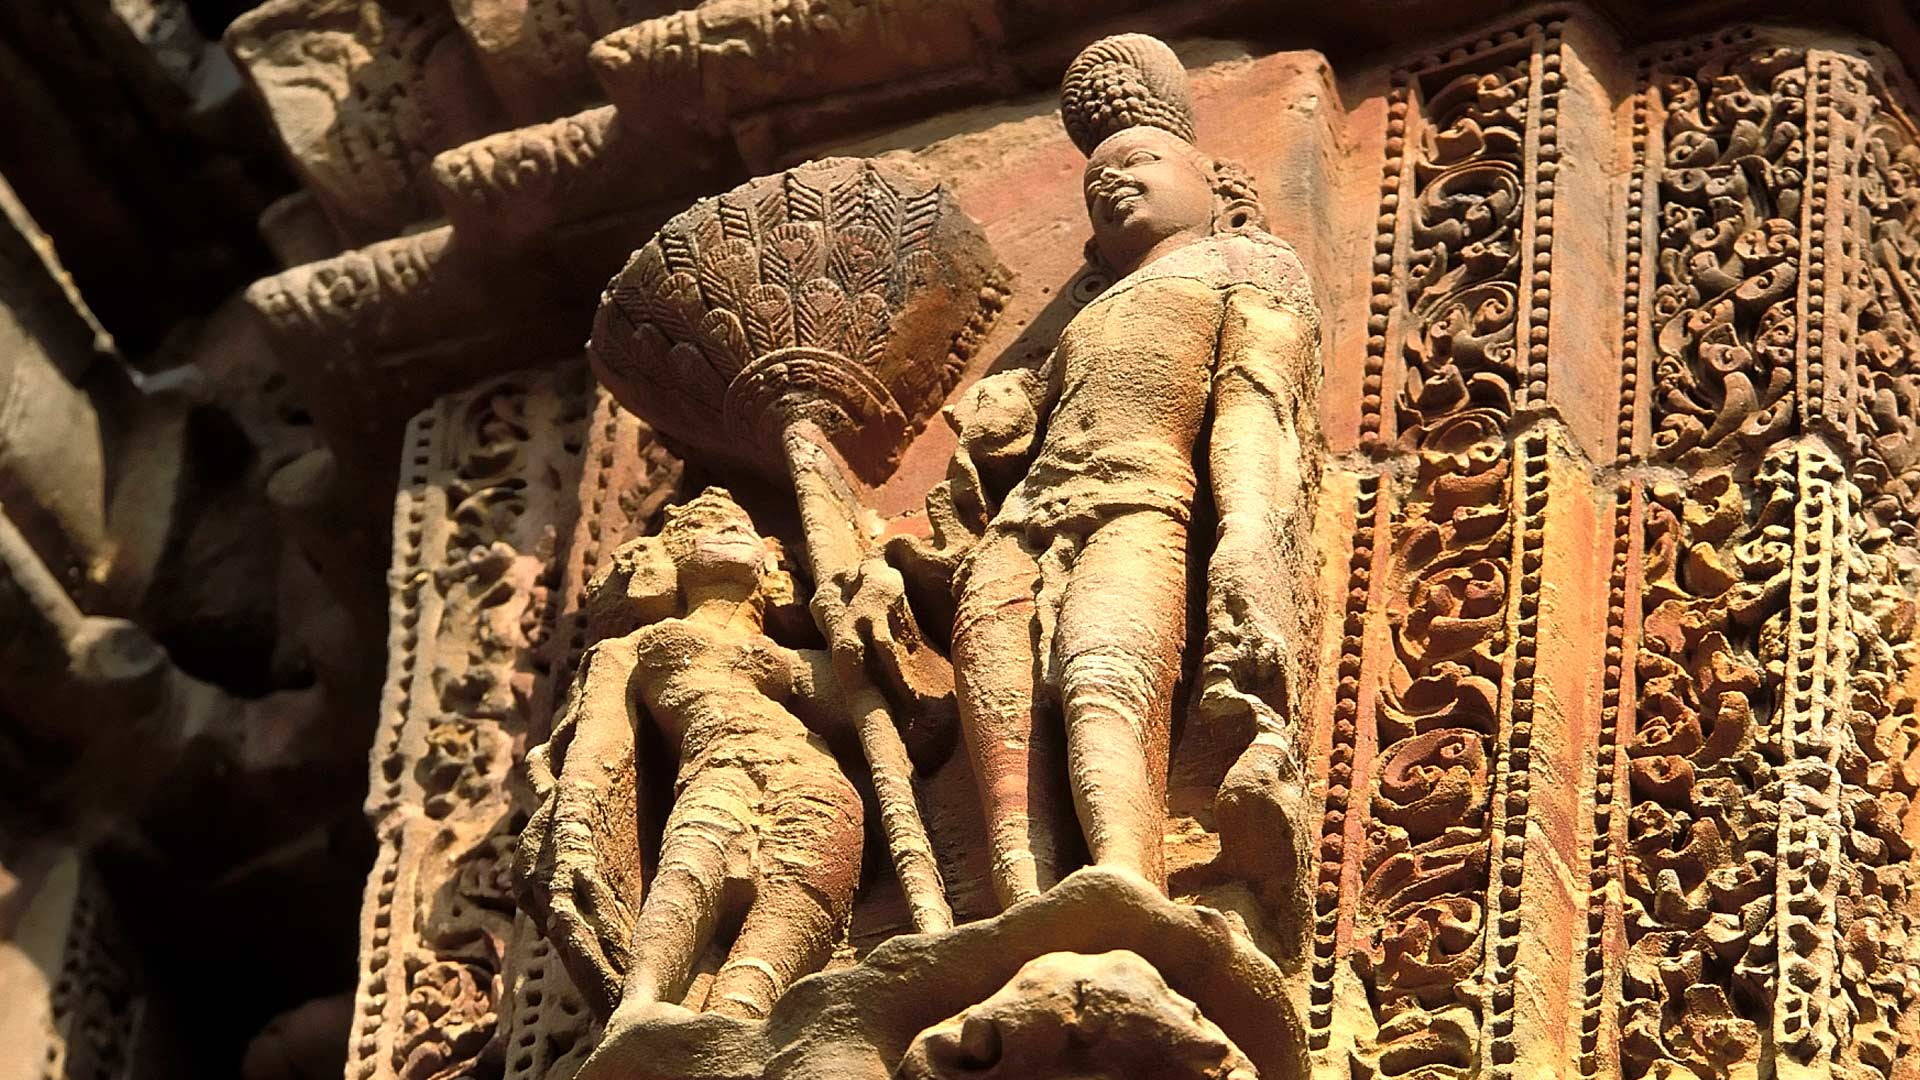 Carving of Shiva and Parvati on the Parsurameswar Temple, Bhubaneswar, Orissa, India